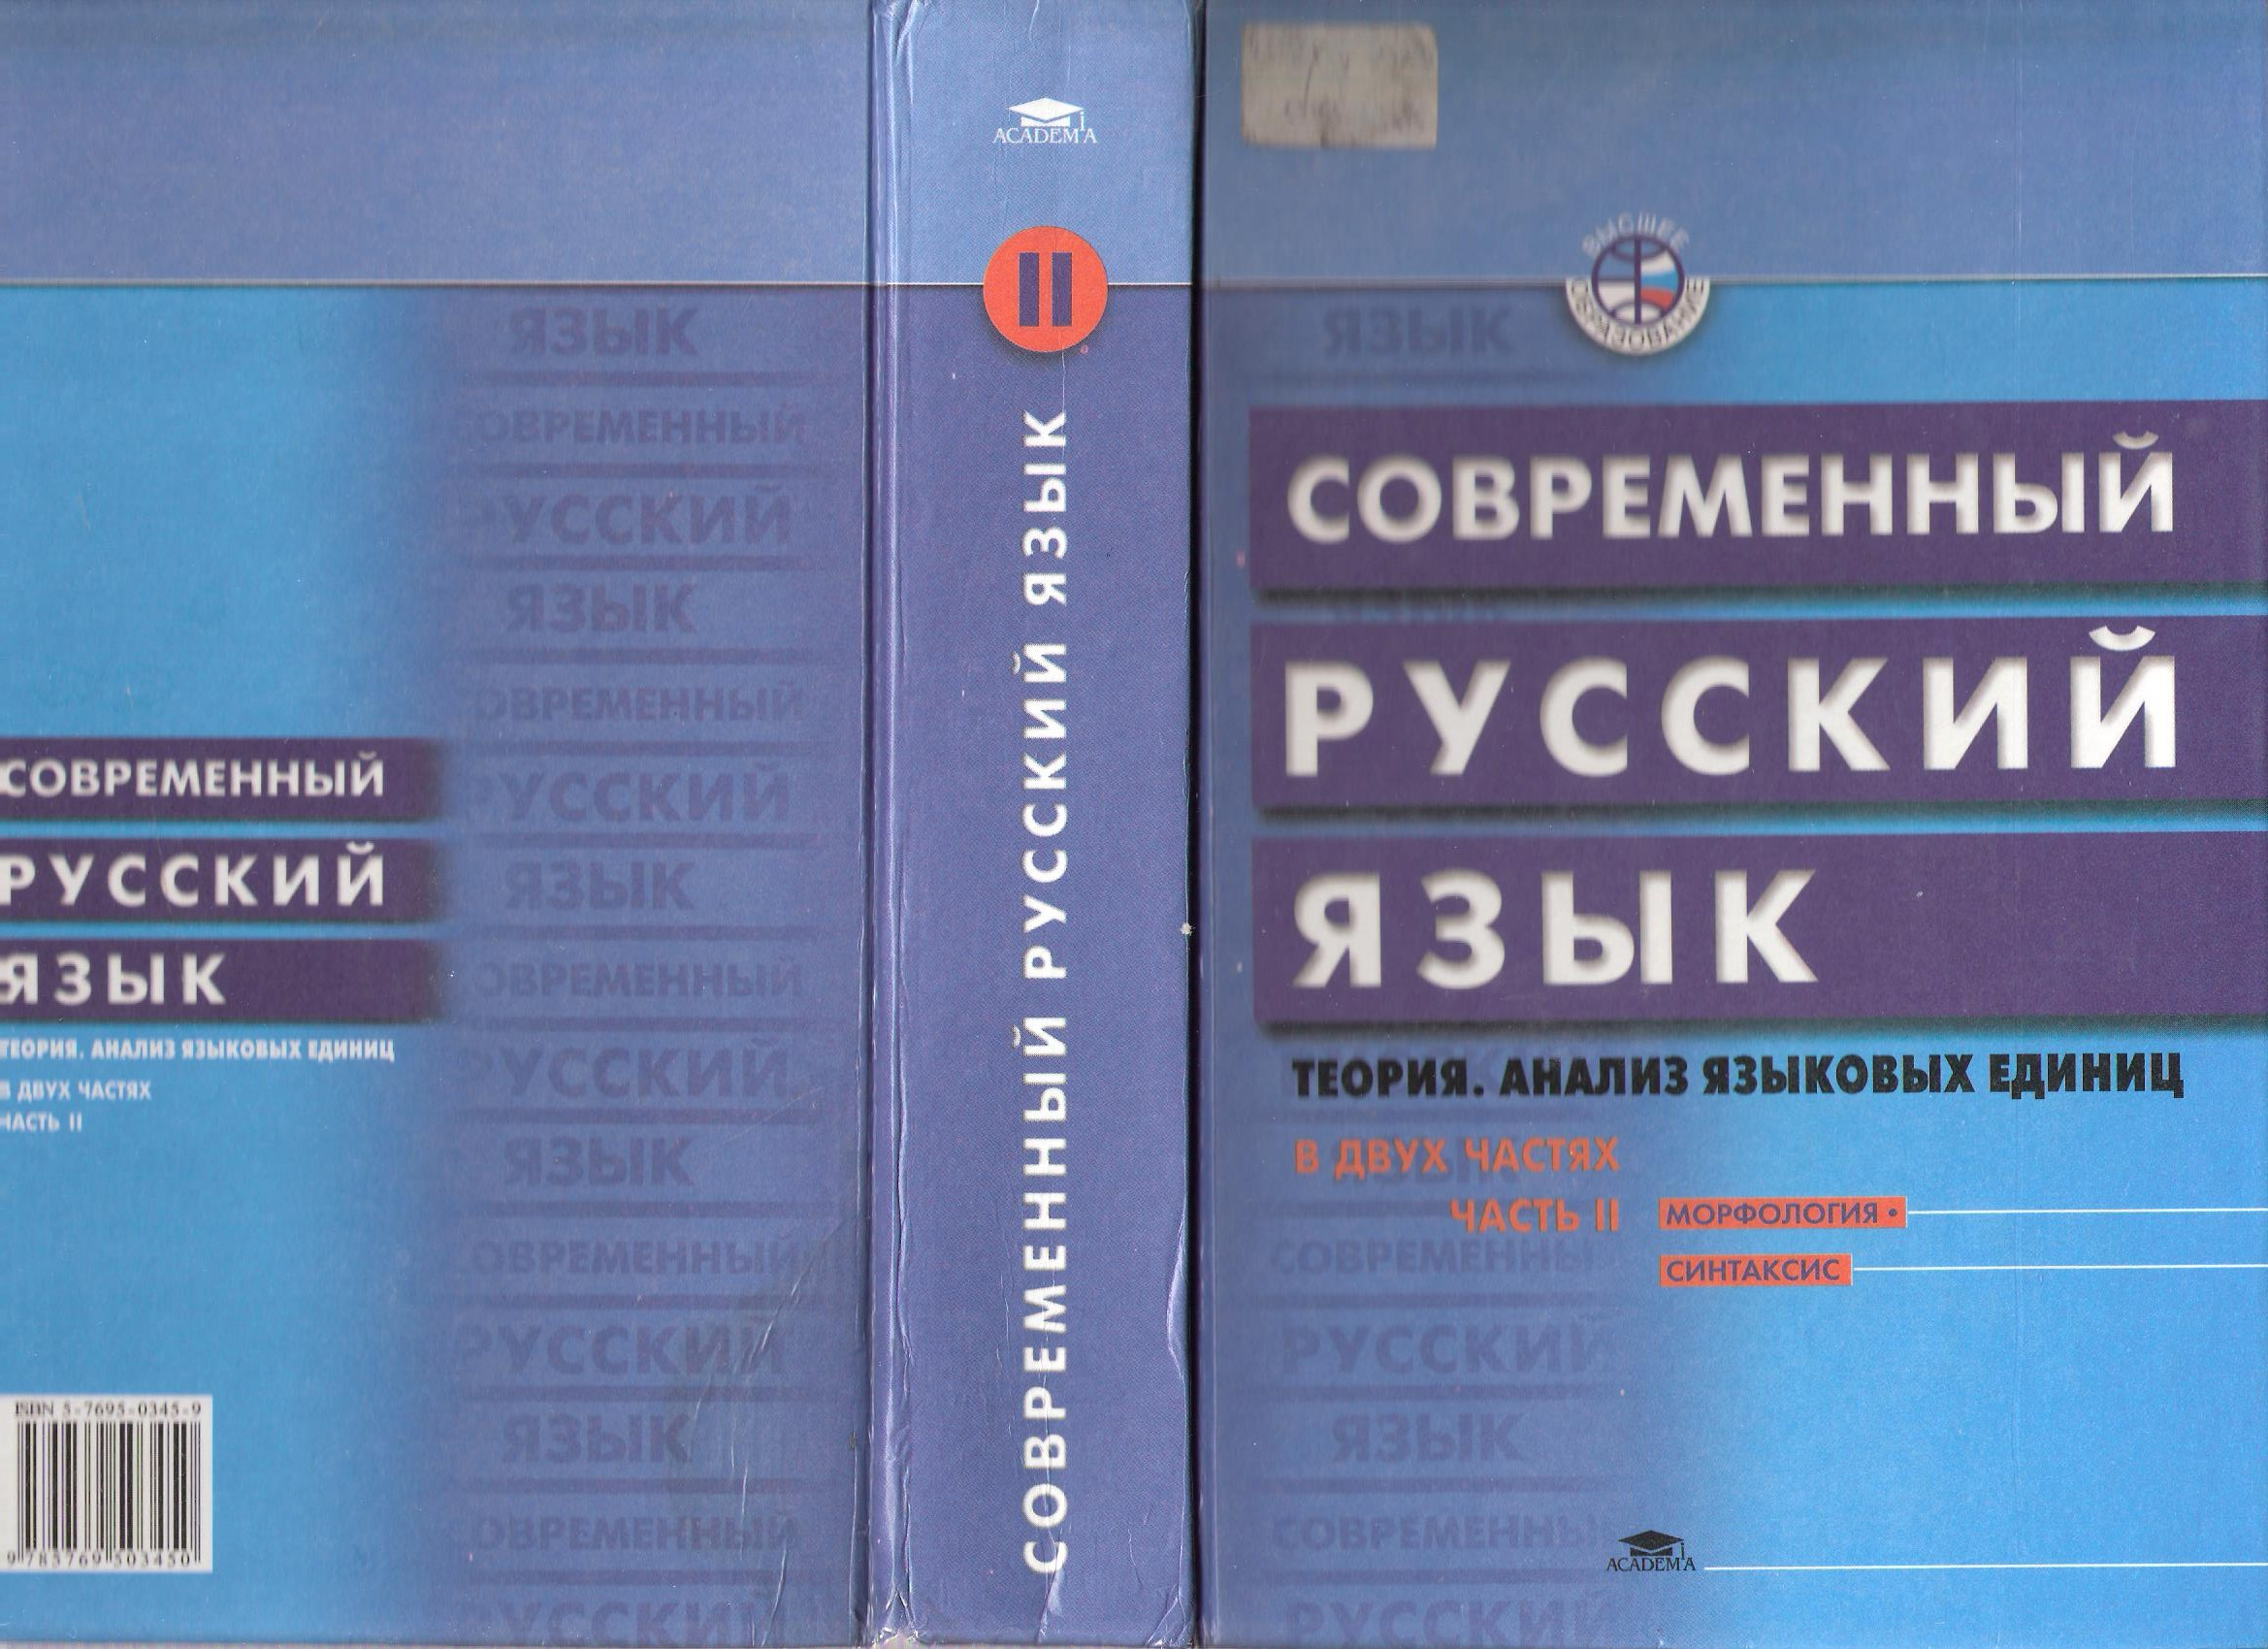 CONTEMPORARY RUSSIAN LANGUAGE Part 2, ed. EI Dibrova